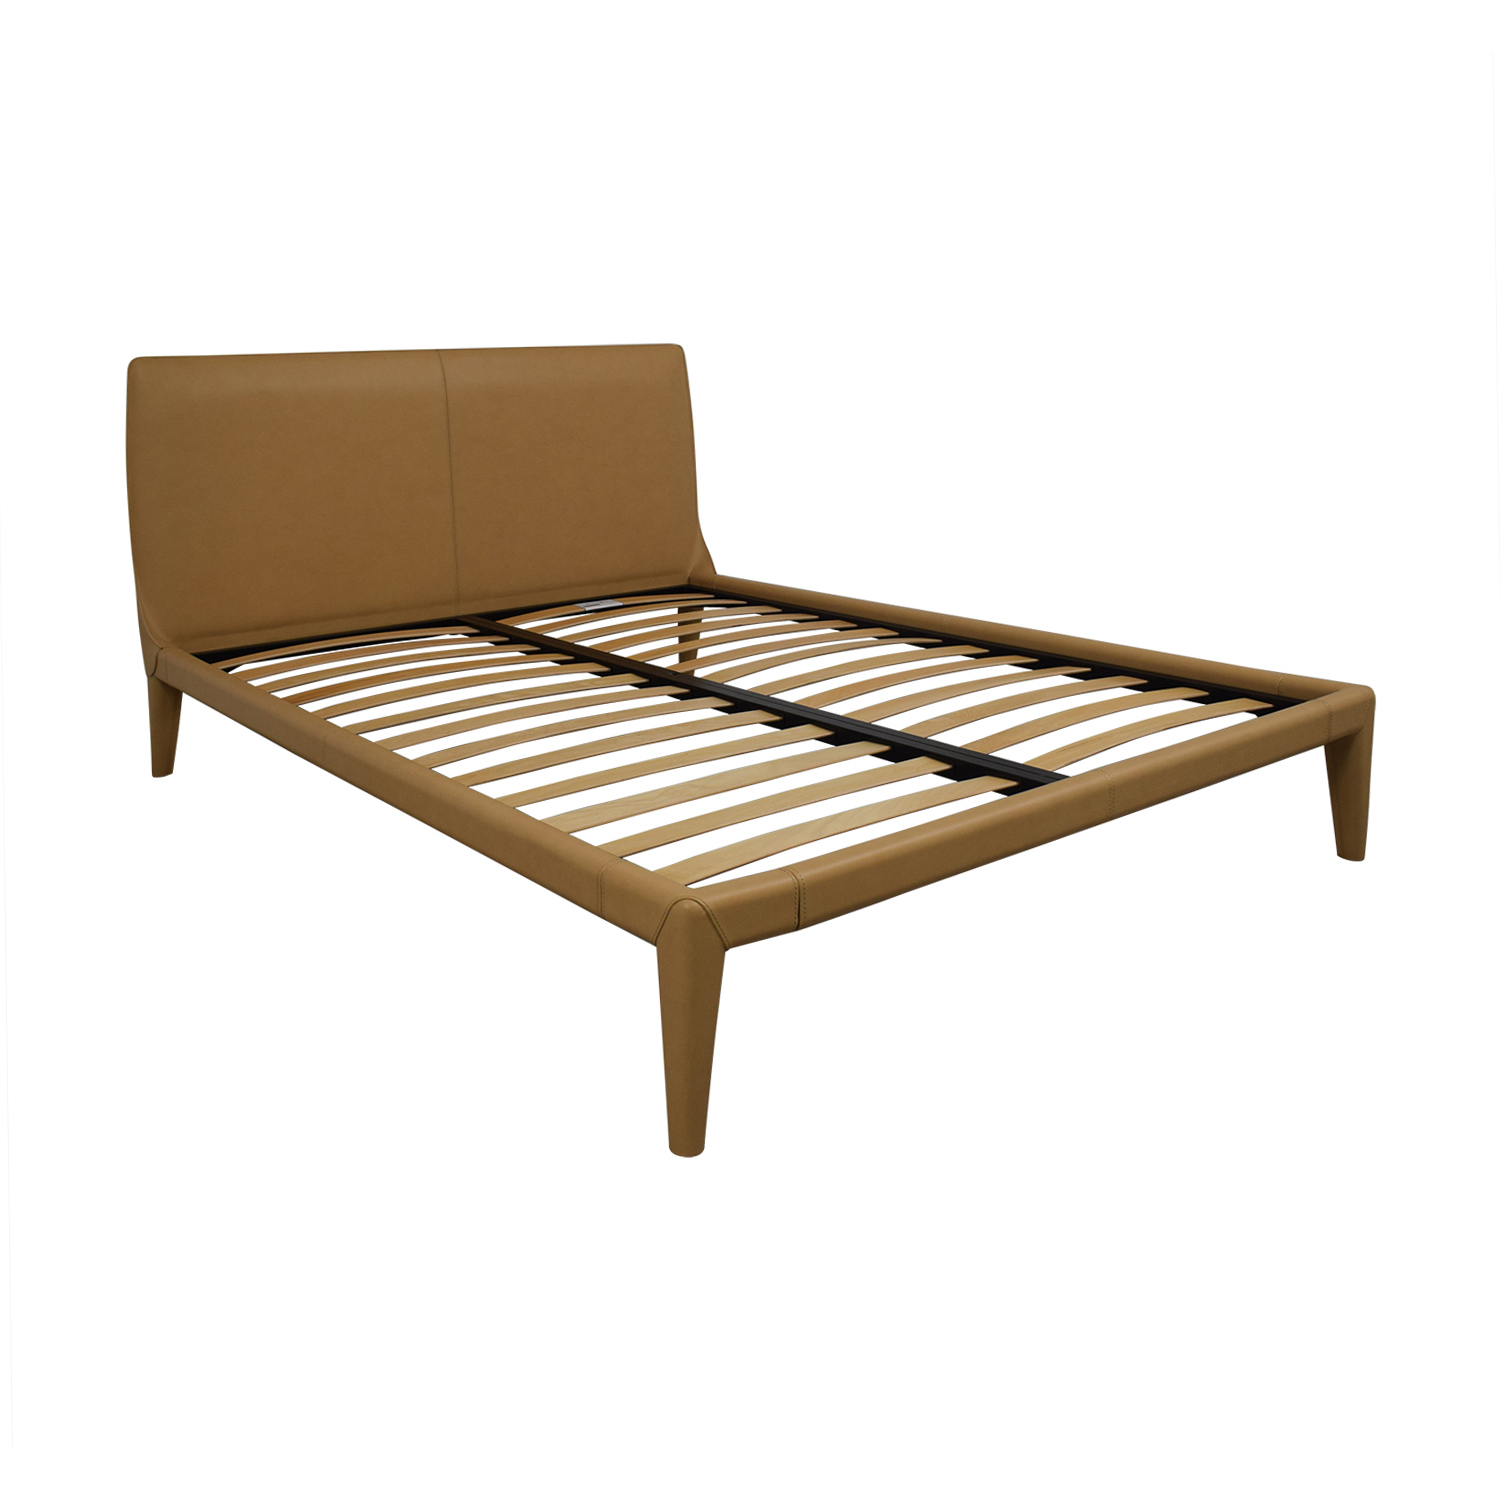 Design Within Reach Design Within Reach Vella Buff Platform Queen Bed Frame for sale